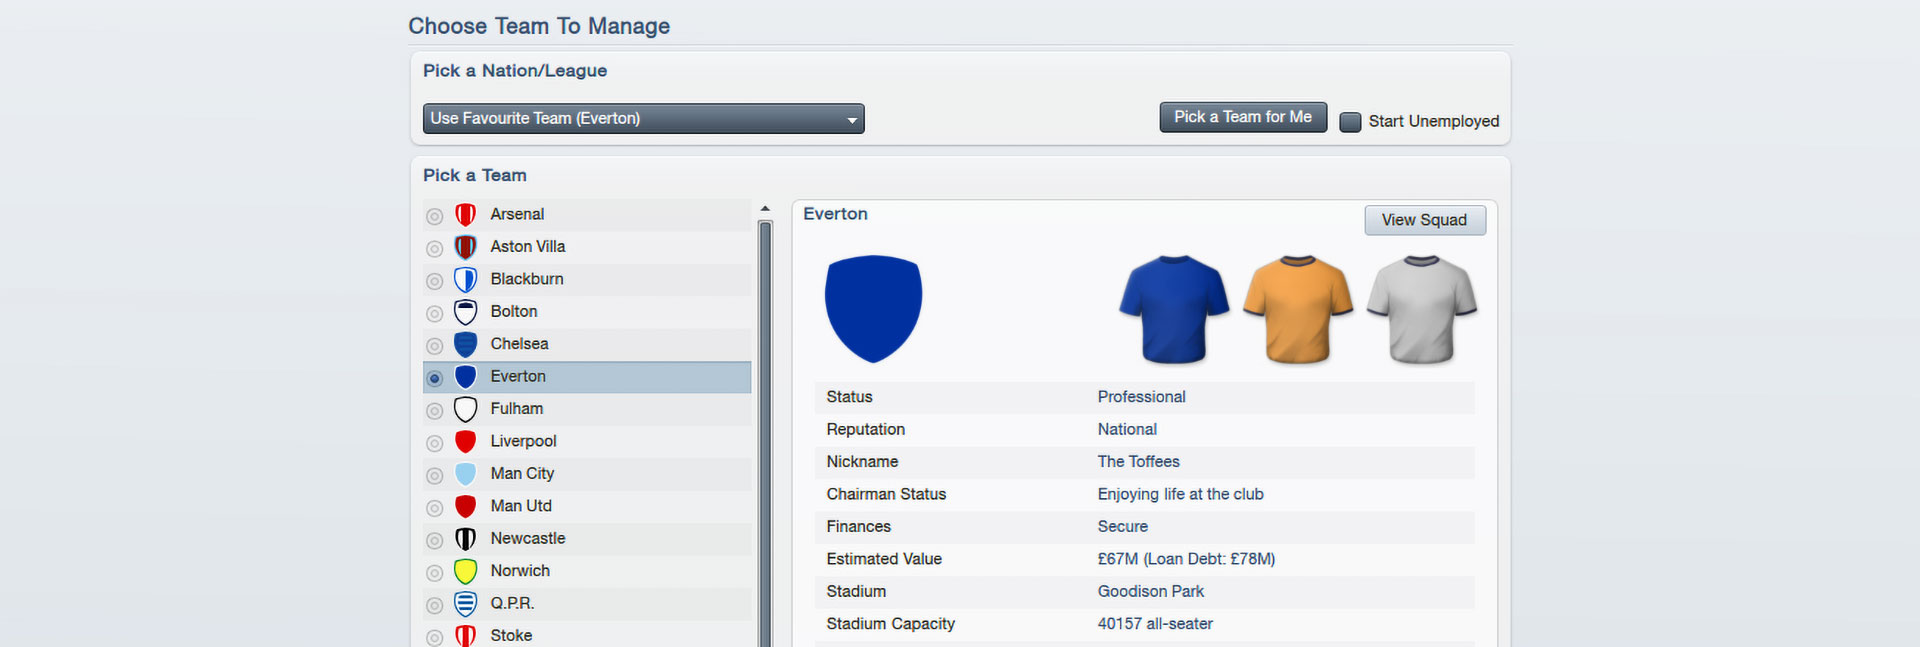 Everton in Football Manager 2012